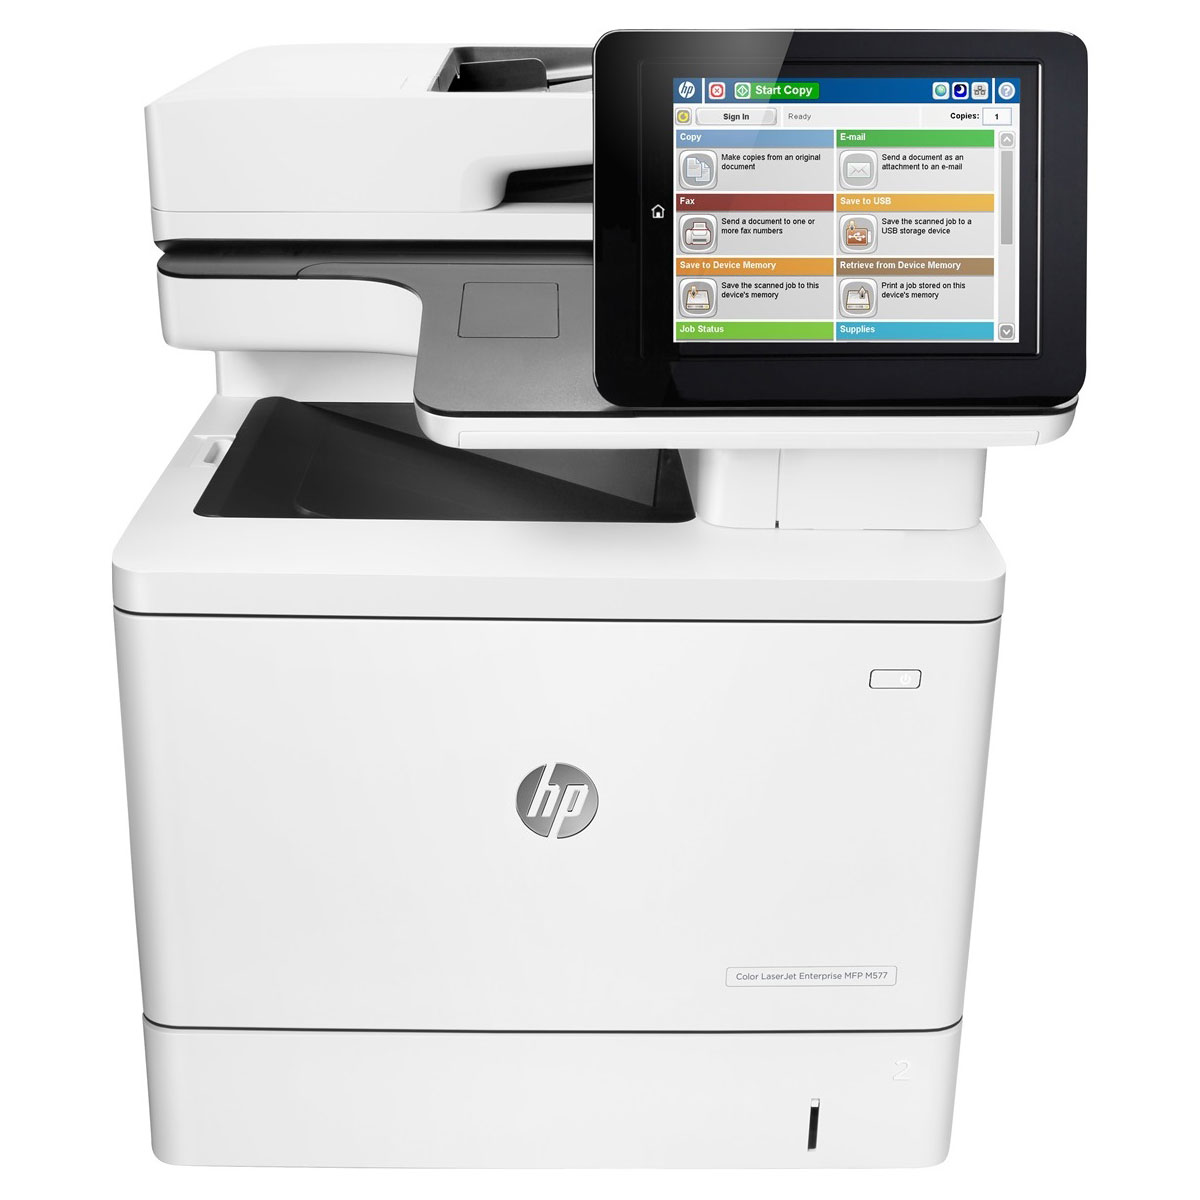 hp laserjet color enterprise mfp m577dn imprimante multifonction hp sur. Black Bedroom Furniture Sets. Home Design Ideas